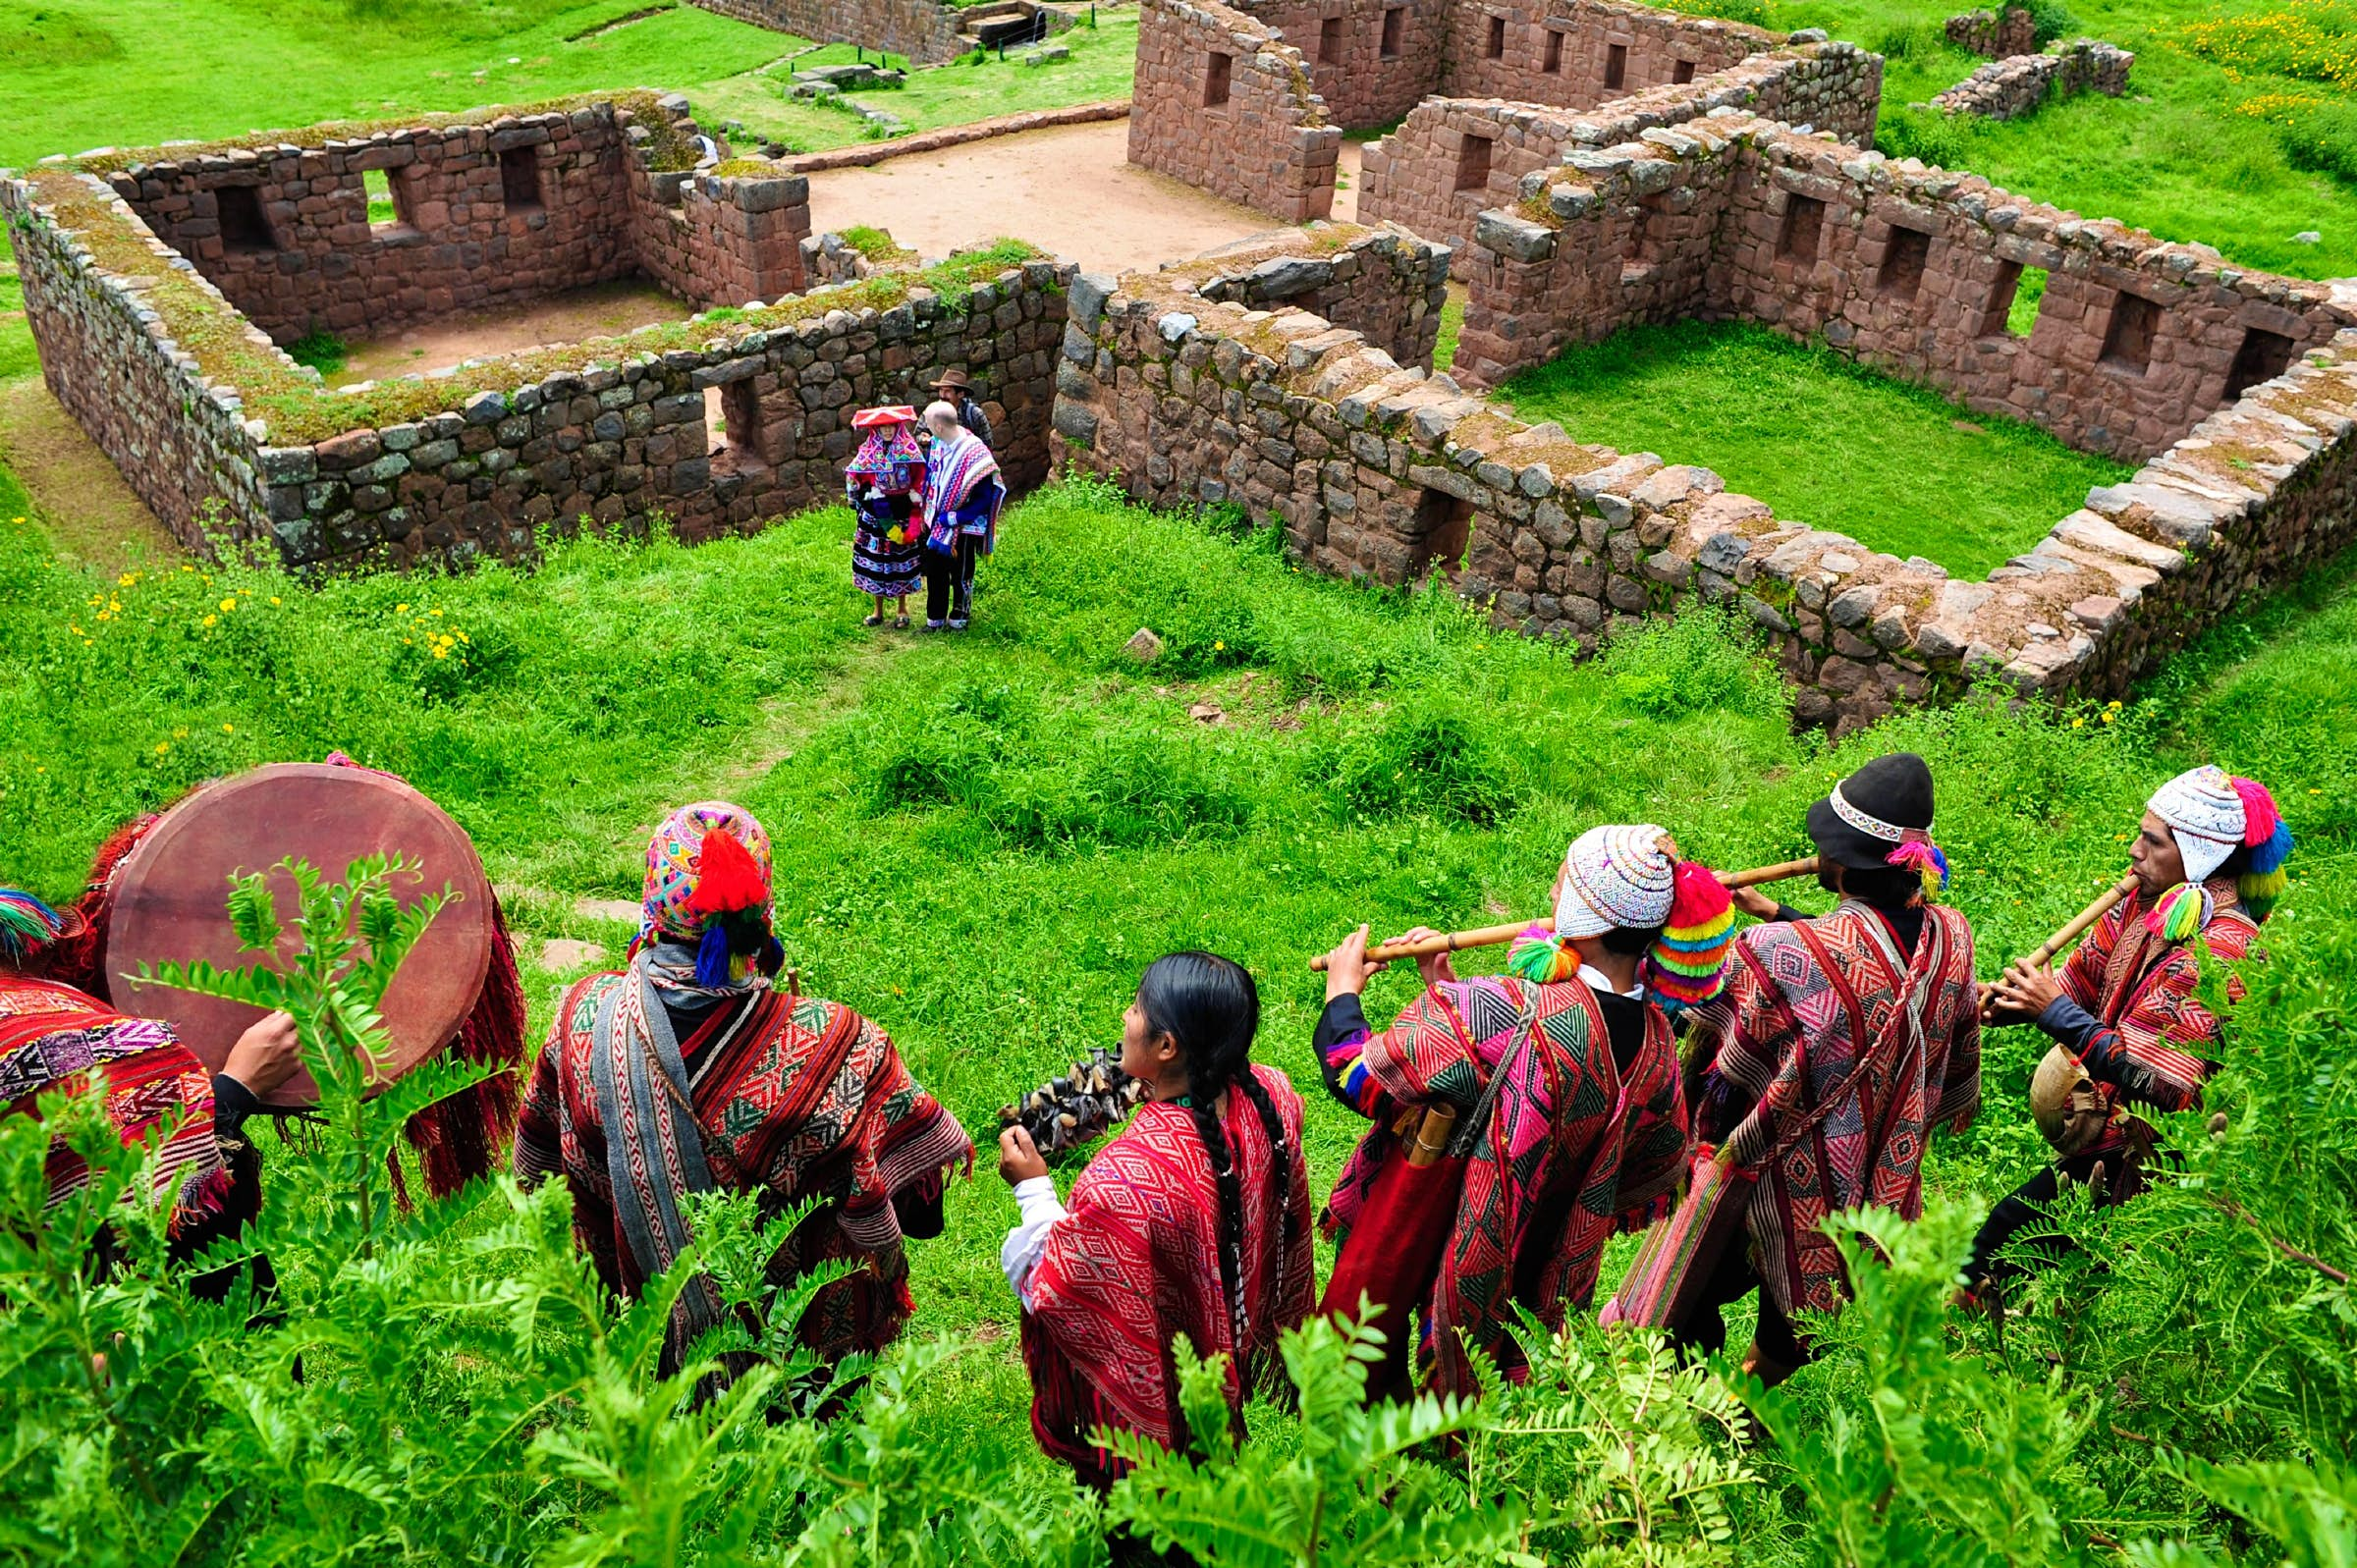 Traditional peruvian wedding ceremony at the Temple of Water ruins in Sacred Valley near Cuzco